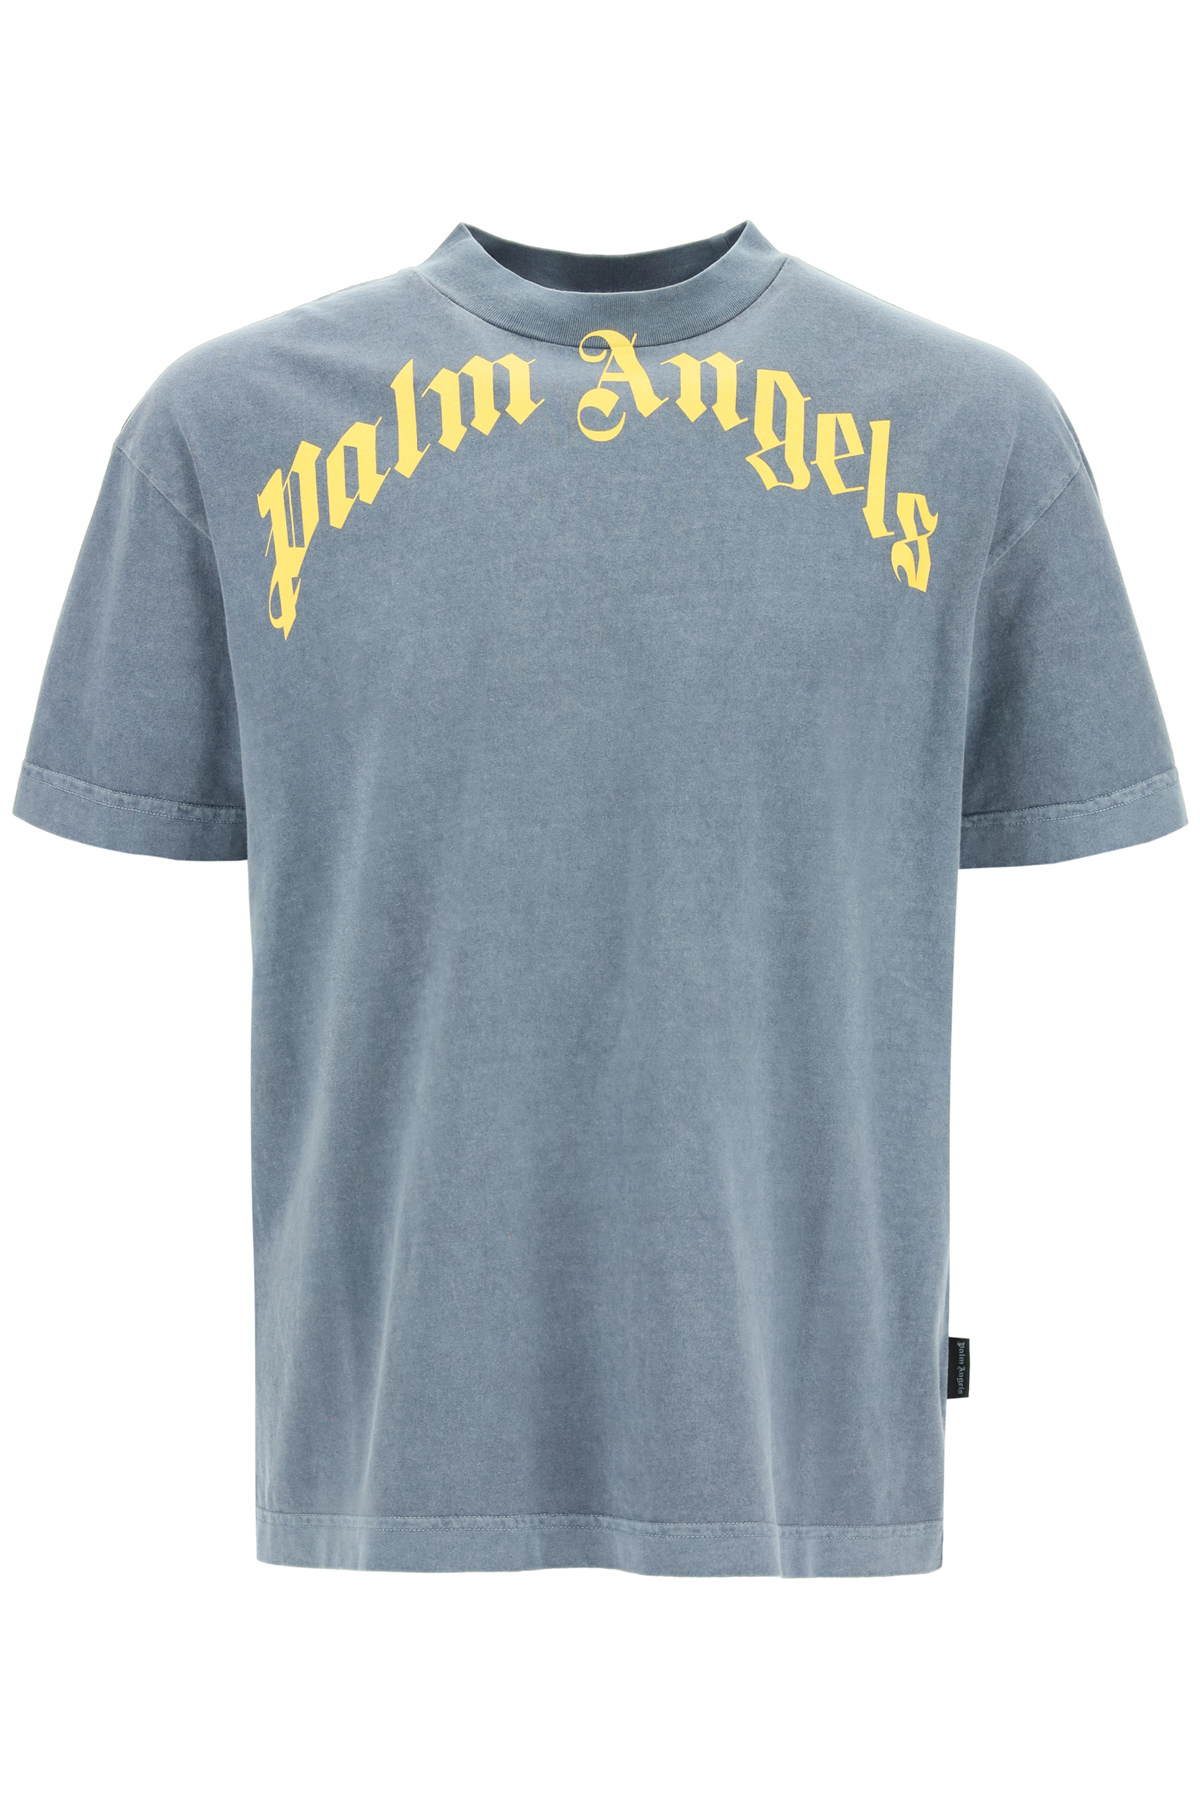 PALM ANGELS VINTAGE T-SHIRT WITH LOGO XS Blue, Yellow Cotton